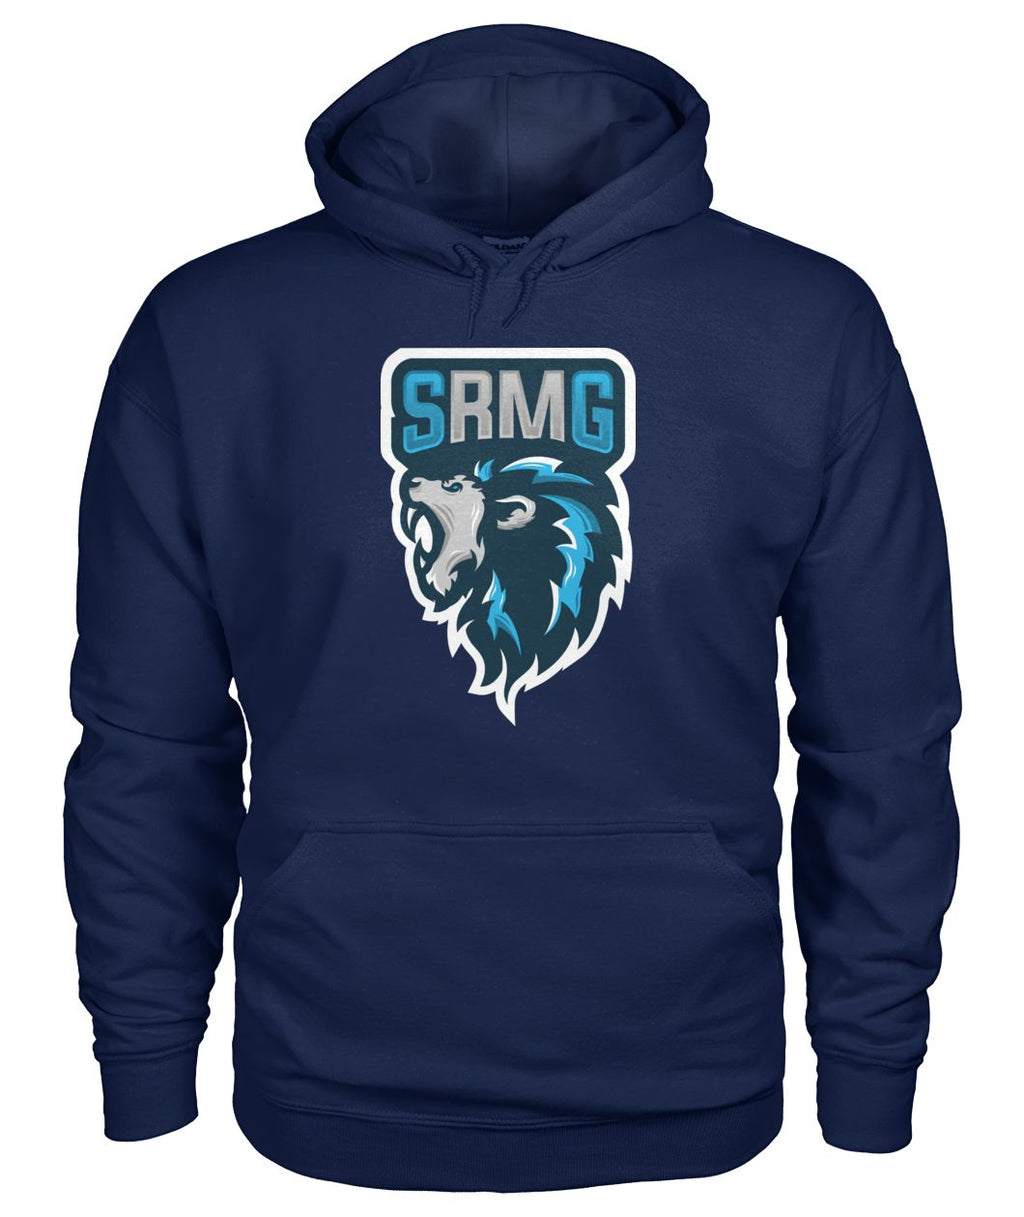 SRM Gaming Mascot Hoodie (4 Color Options)